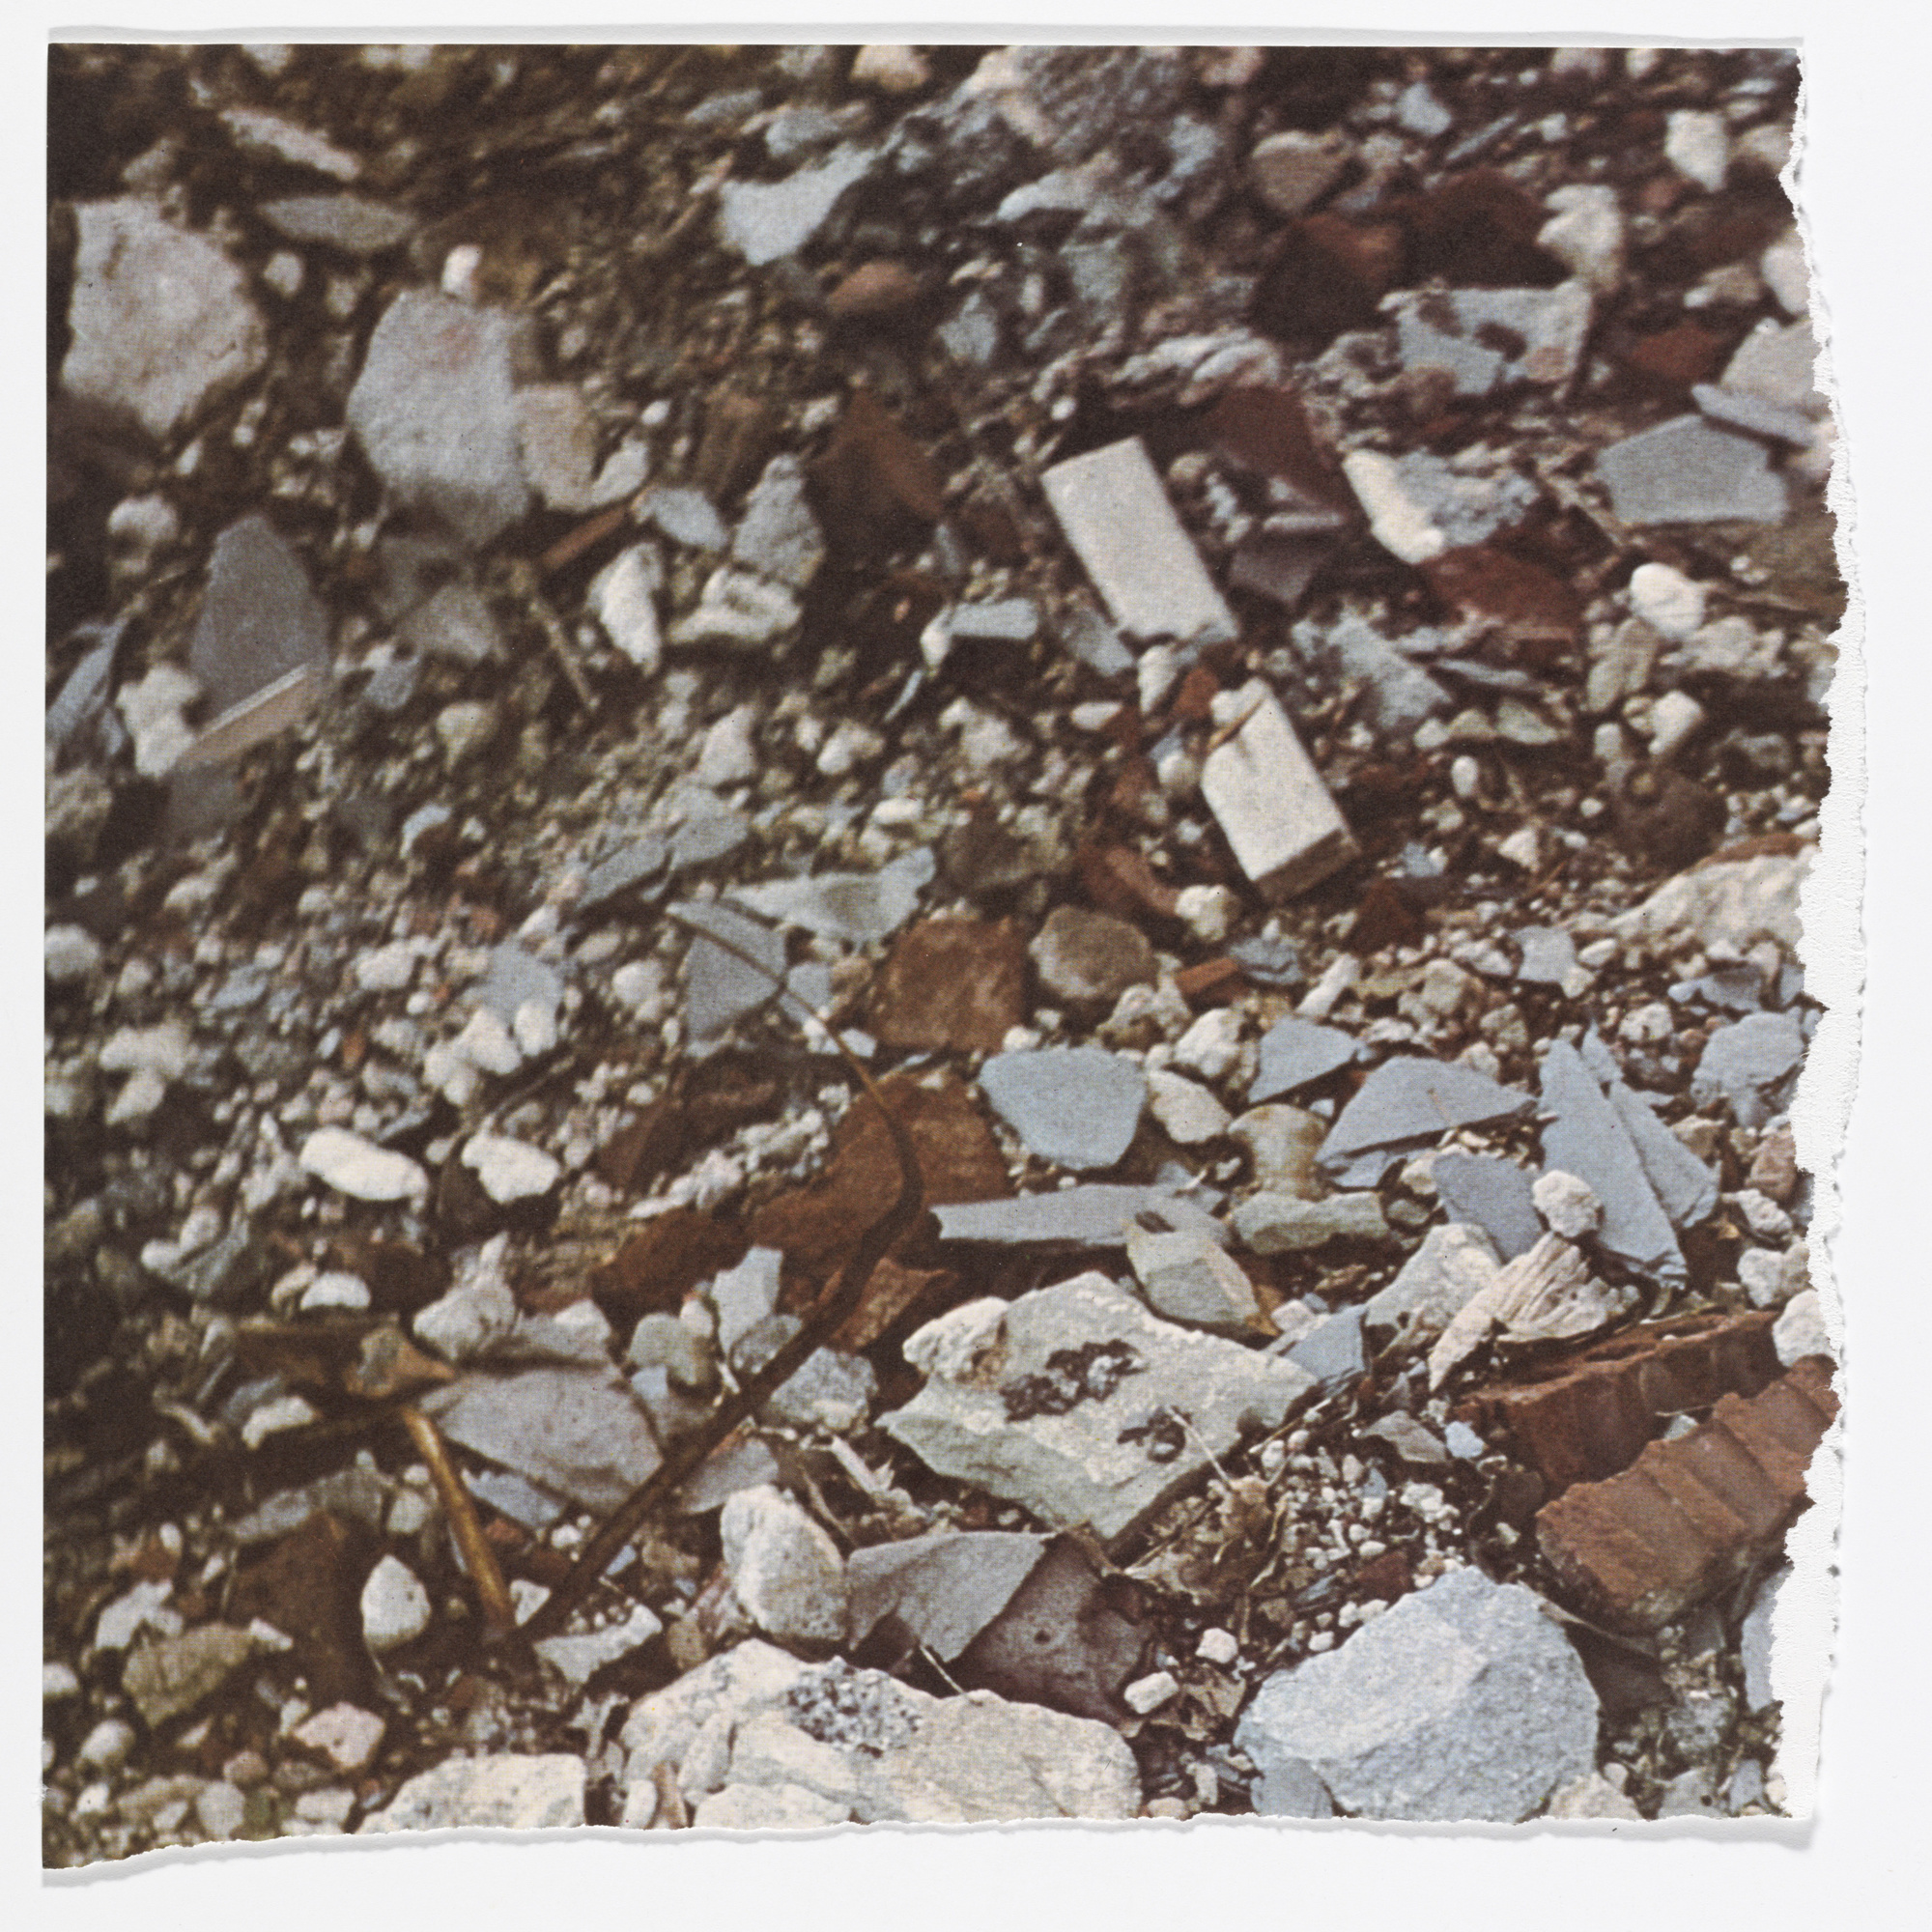 Robert Smithson. Torn Photograph from the 2nd Stop (Rubble) (2nd Mountain of Six Stops on a Section) from Artists & Photographs. 1970. Offset lithograph, torn into four pieces from a portfolio of nineteen printed objects (including box cover), ea. approx. sheet 10 7/8 × 11″ (27.6 × 28 cm). Gift of Kynaston McShine